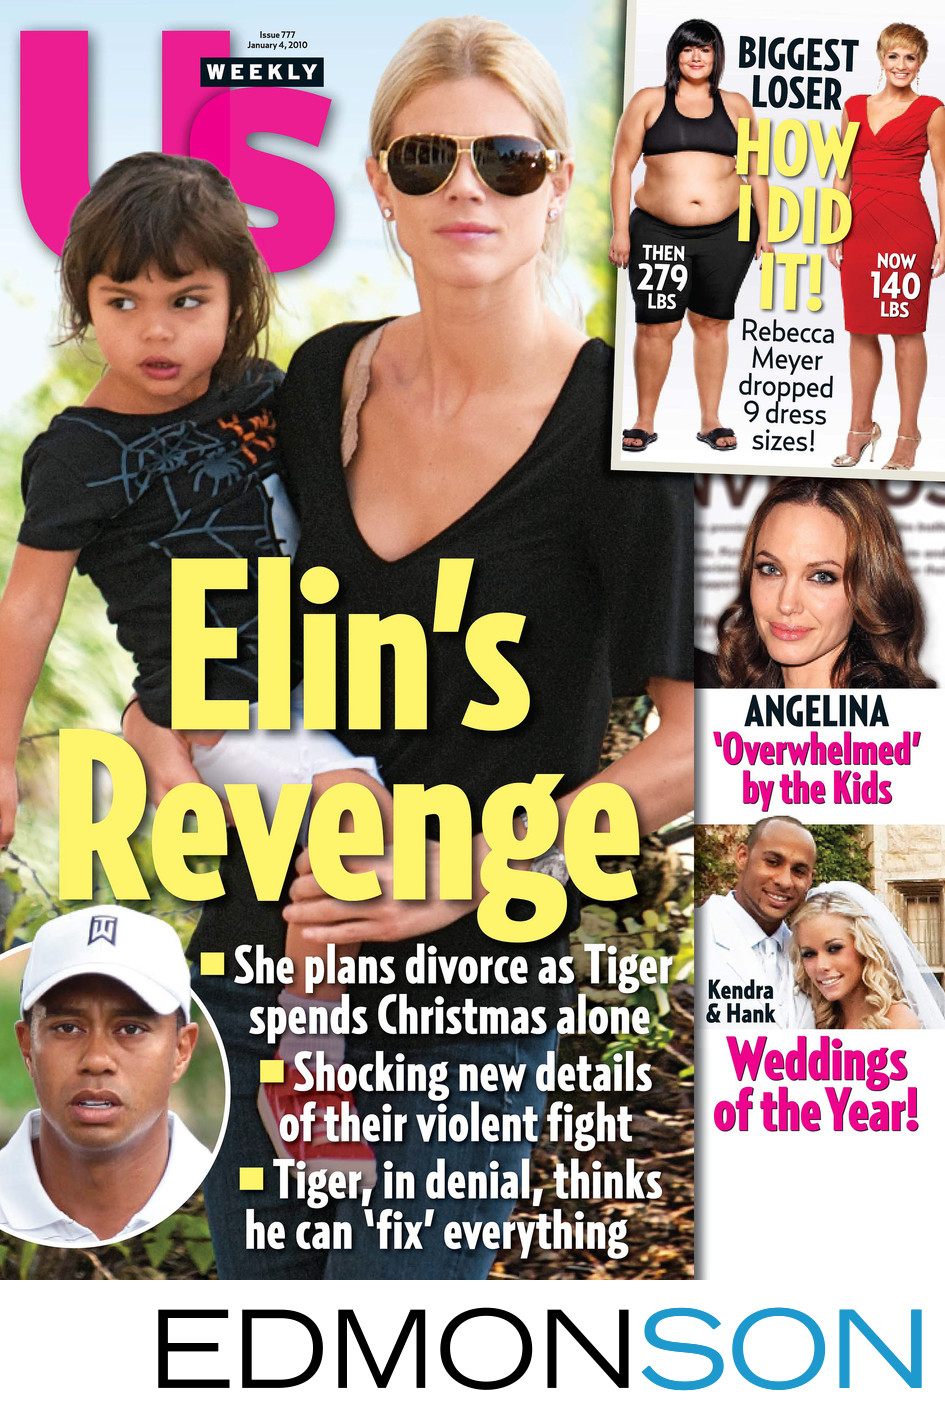 Us Weekly Covers Weddings Of The Year Michelle Aguilar